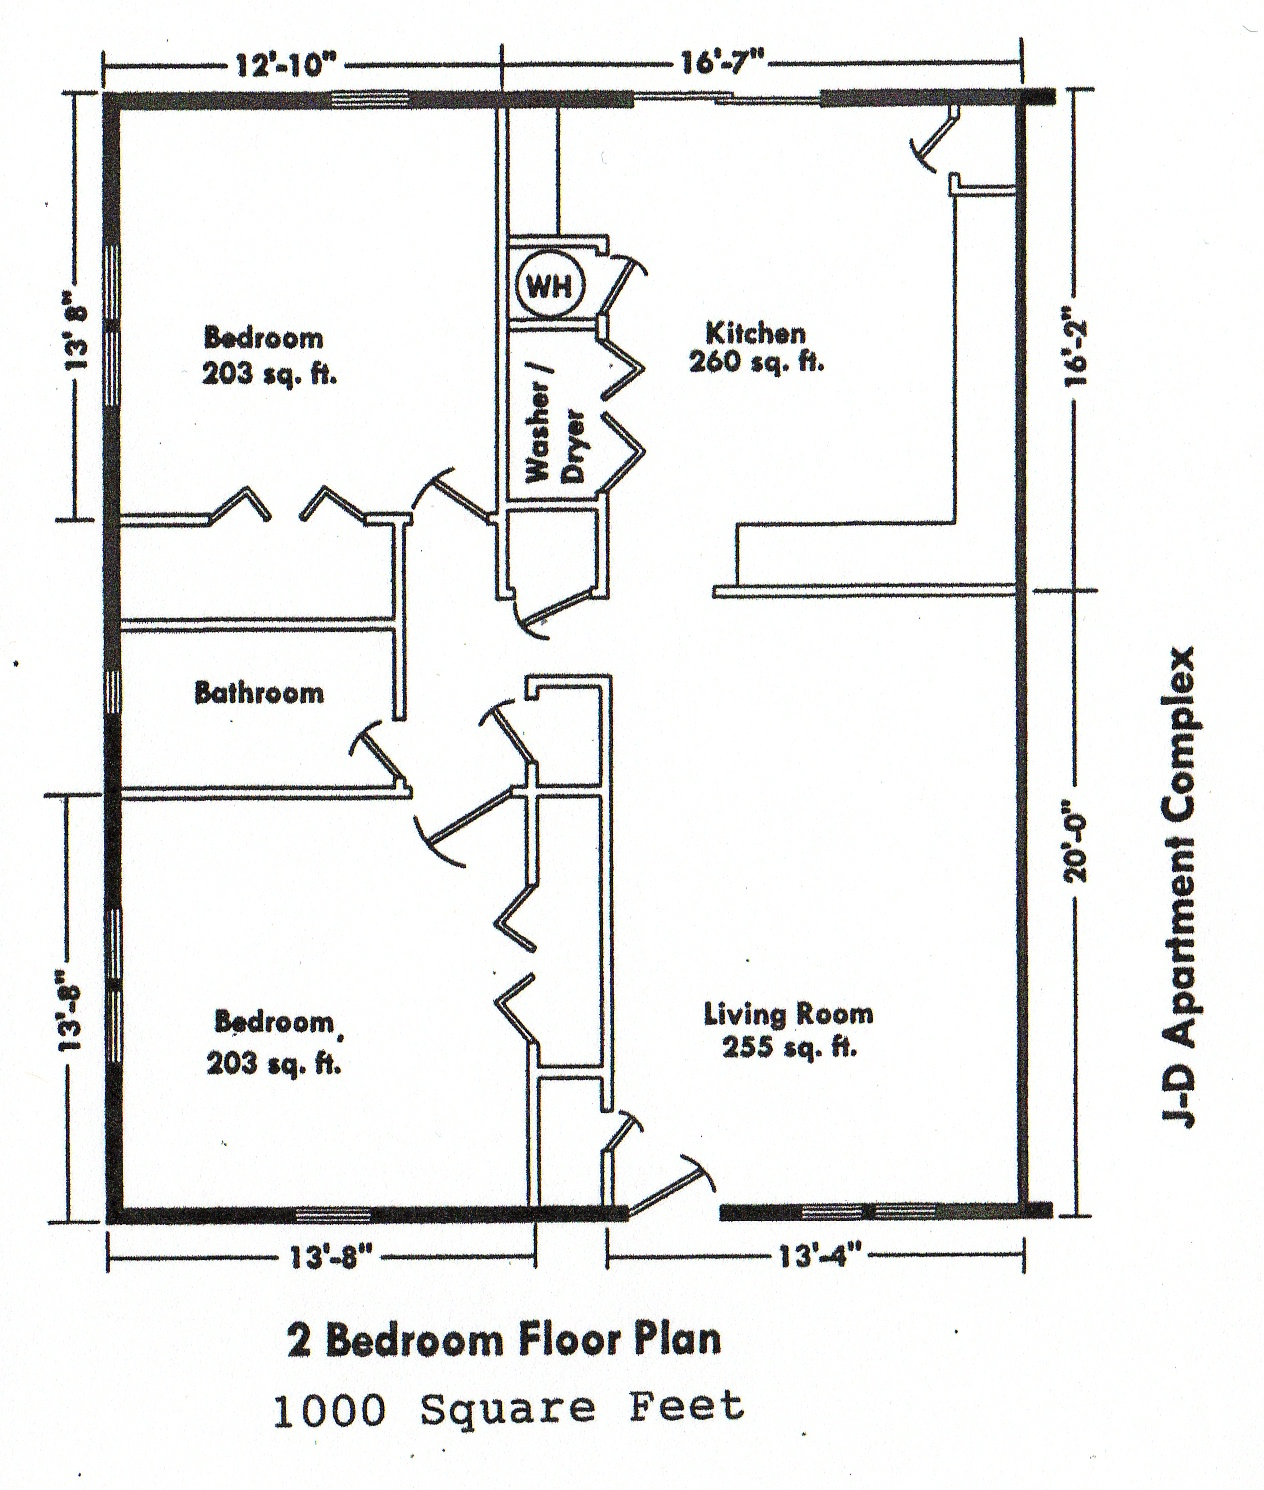 Bedroom floor plans over 5000 house plans for Floor plans for a 4 bedroom 2 bath house